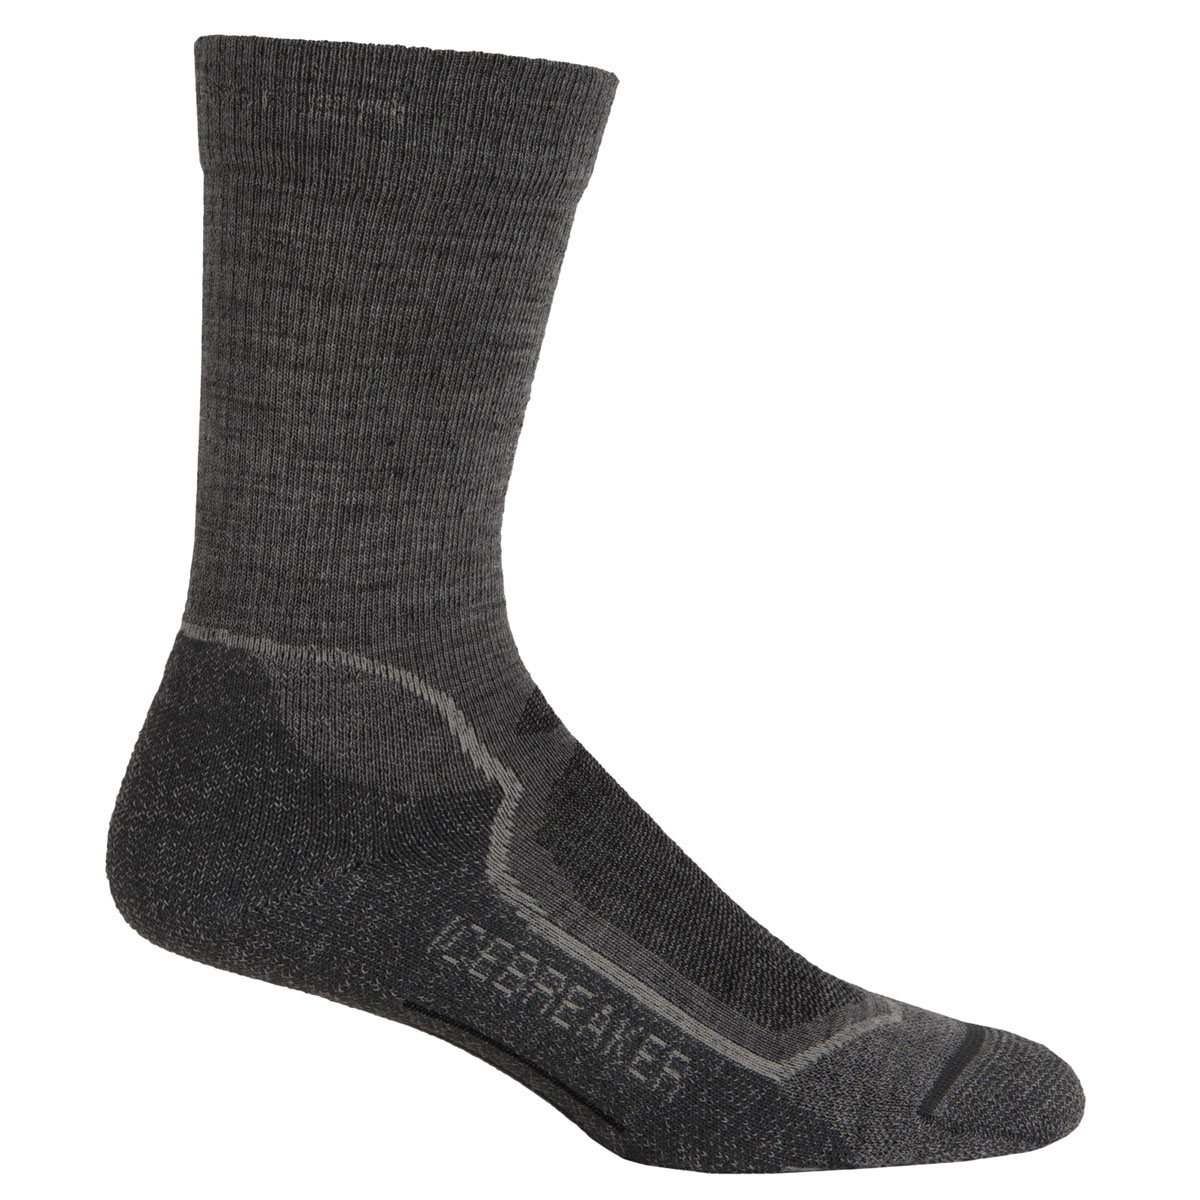 64f662249f Icebreaker Hike Plus Lite Crew Socks for Men Twister Heather/silver ...